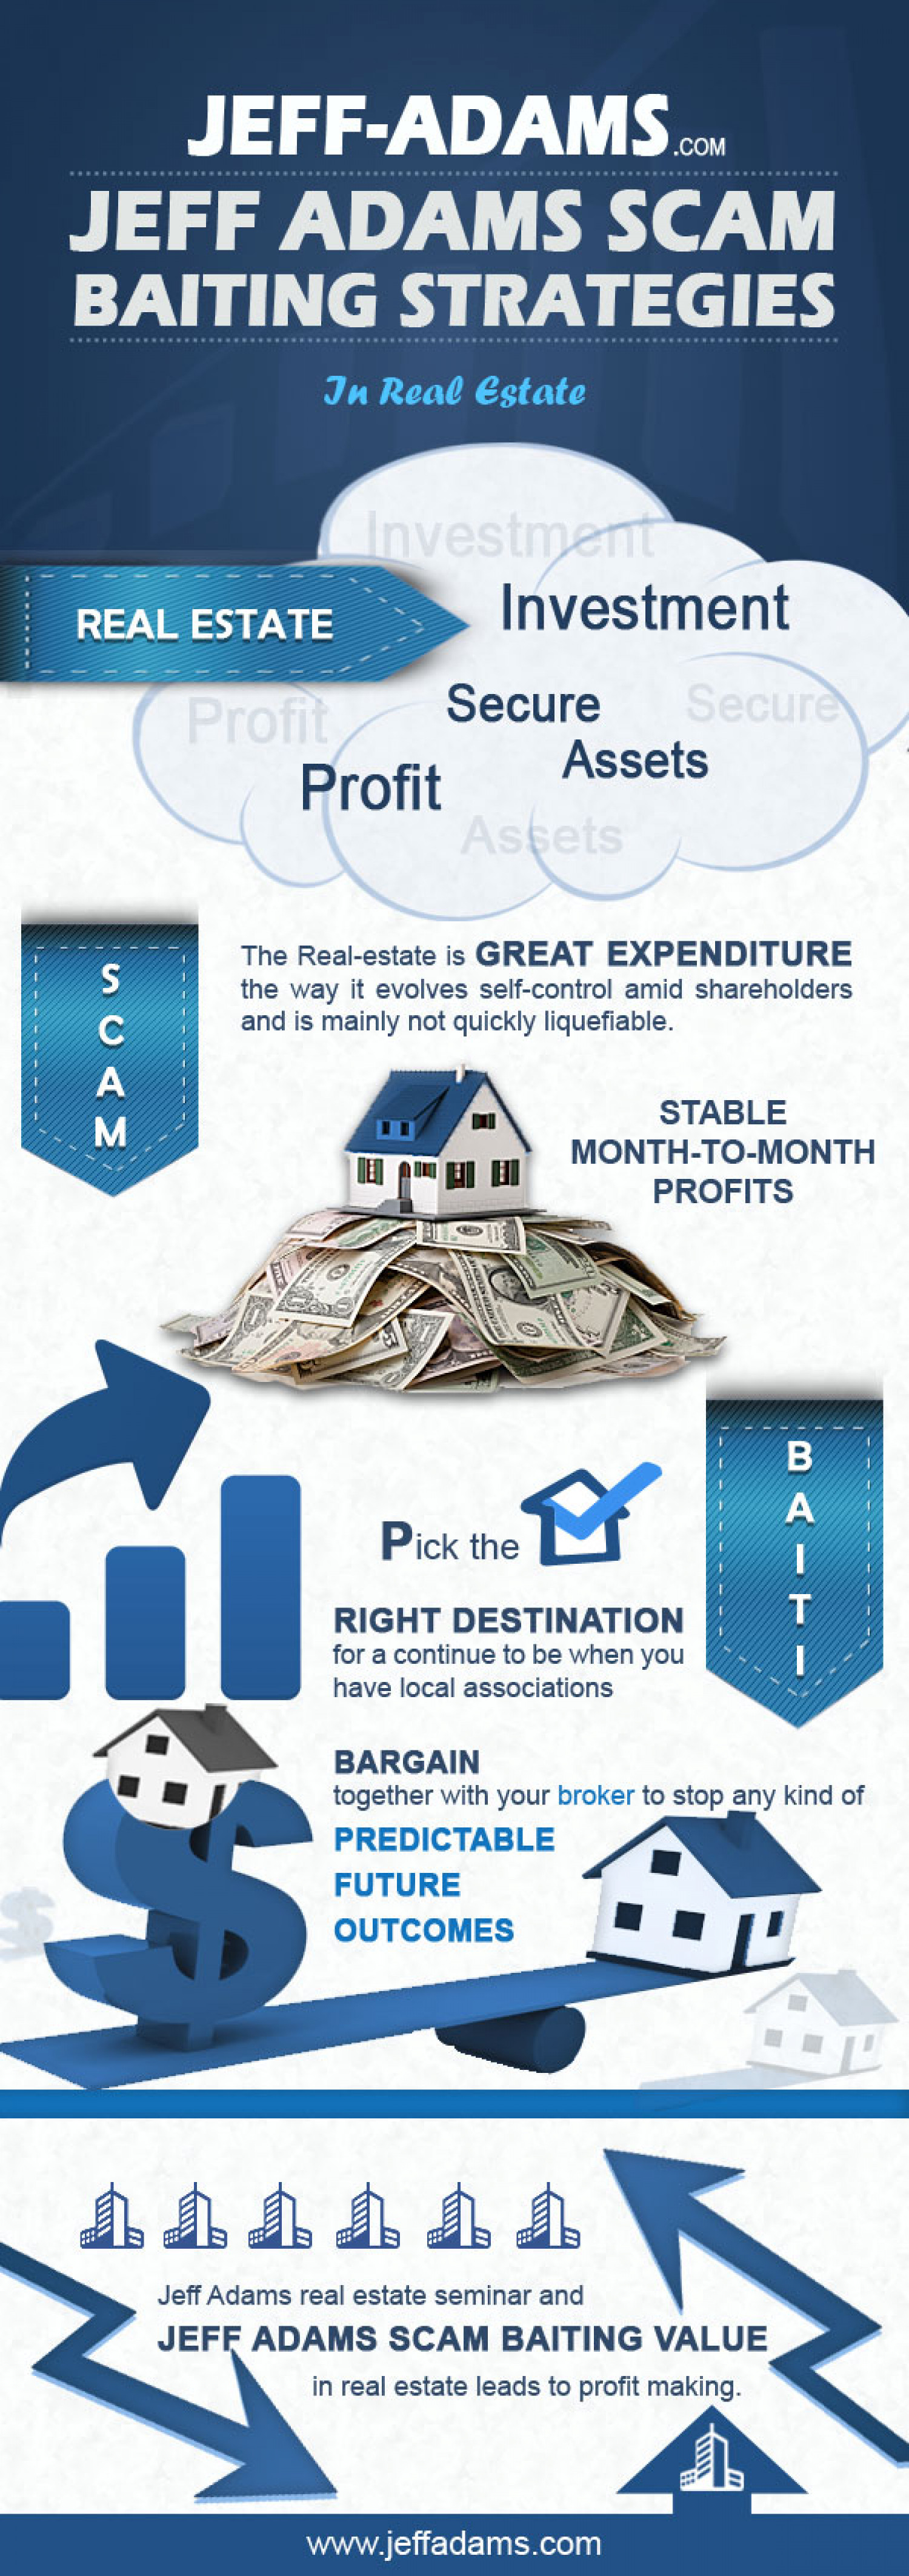 Jeff Adams Scam Baiting Strategies Infographic